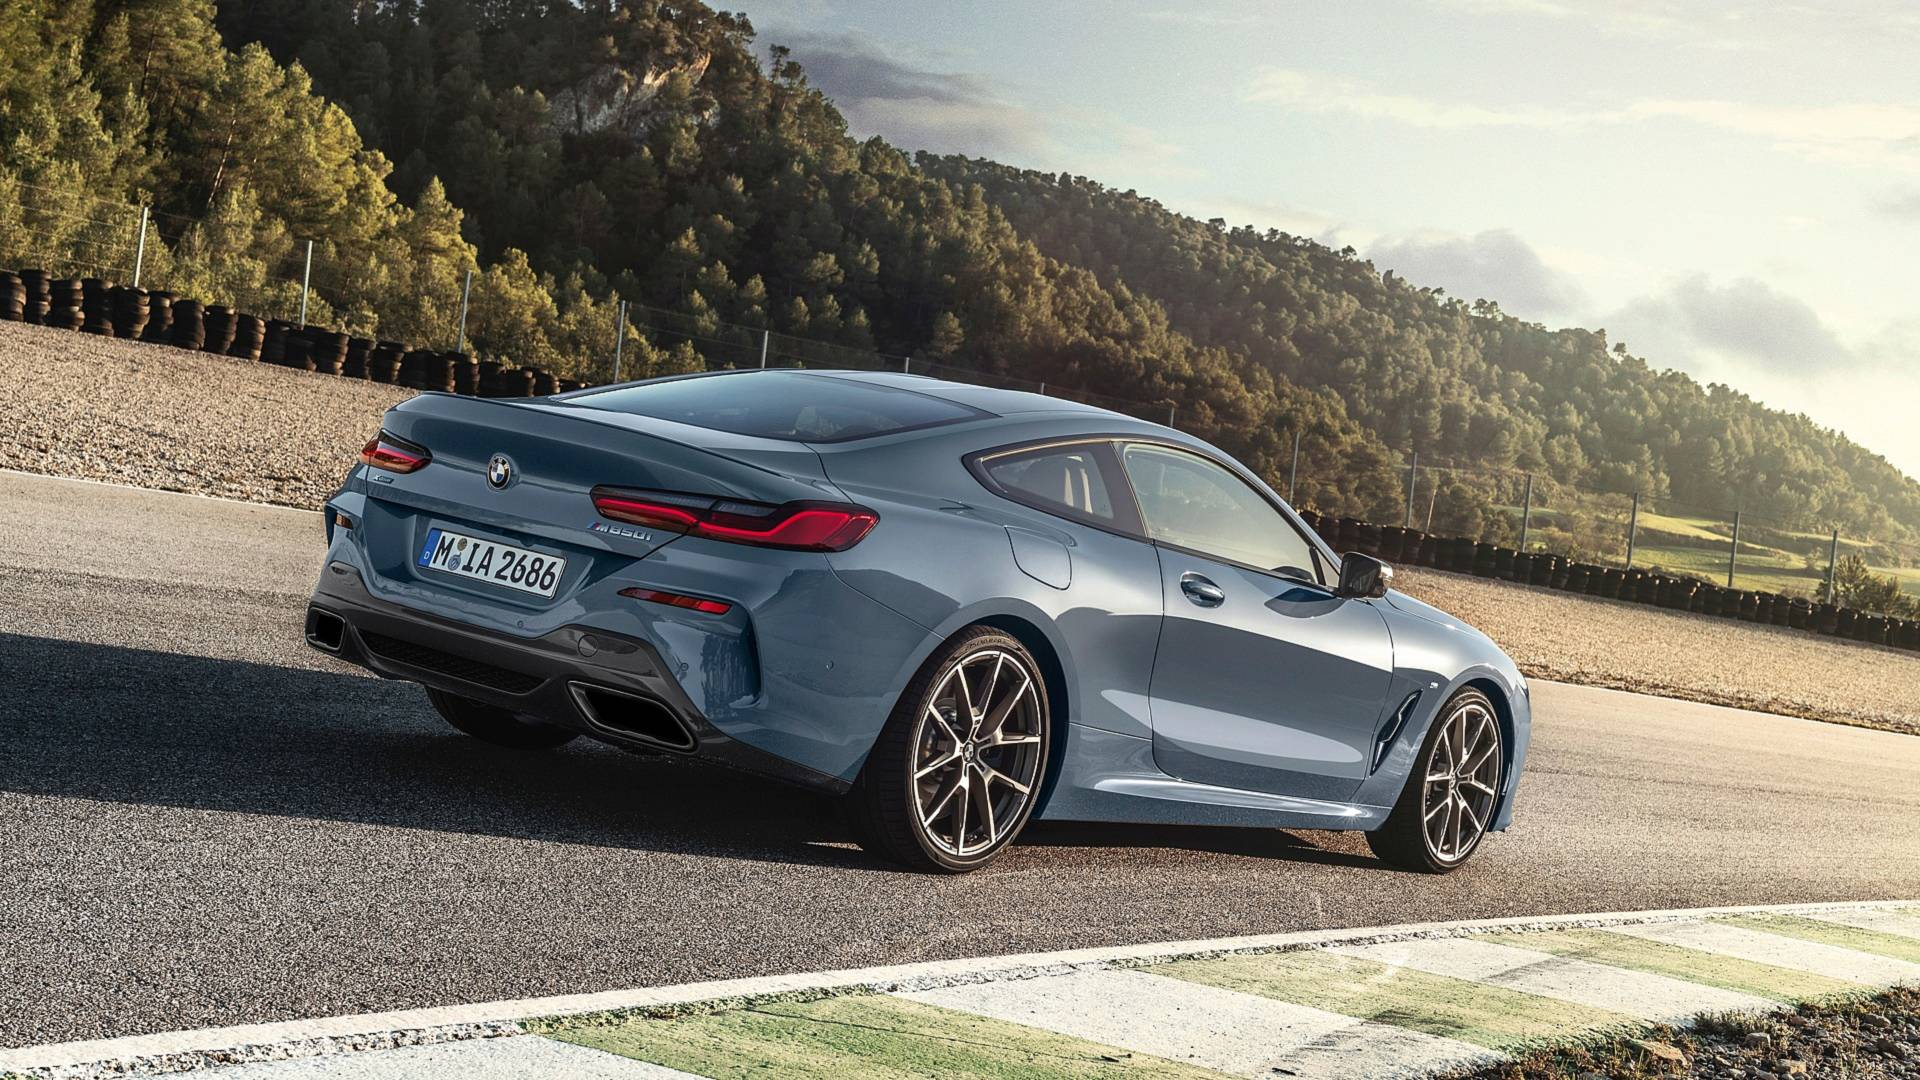 2019 Bmw 8 Series Pricing Announced 840d Xdrive Starts At